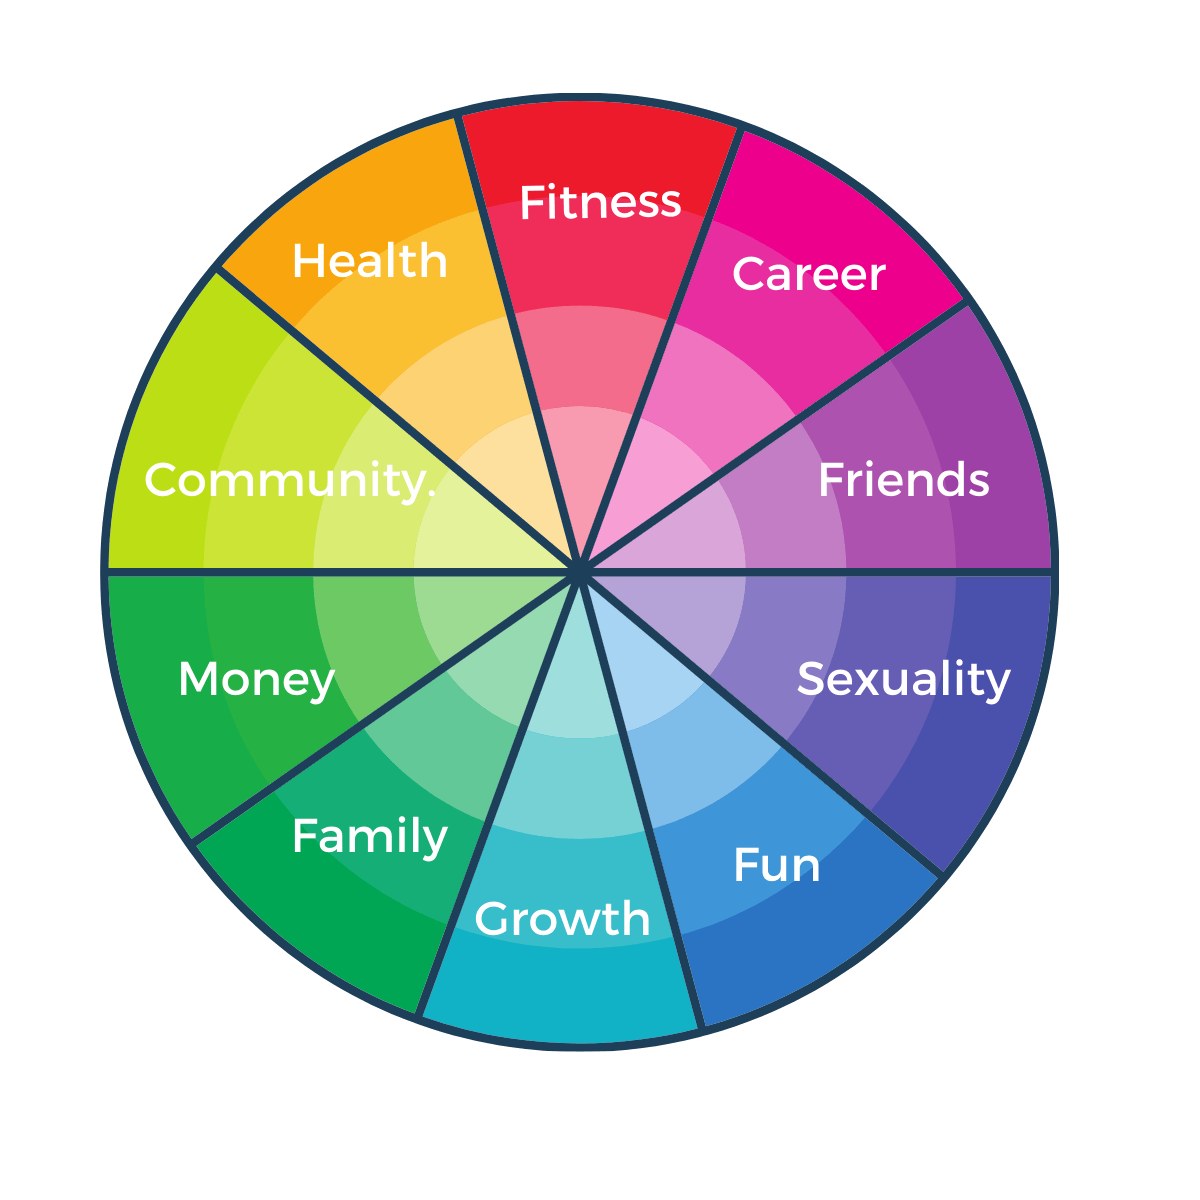 10 sections of the Wheel of Life